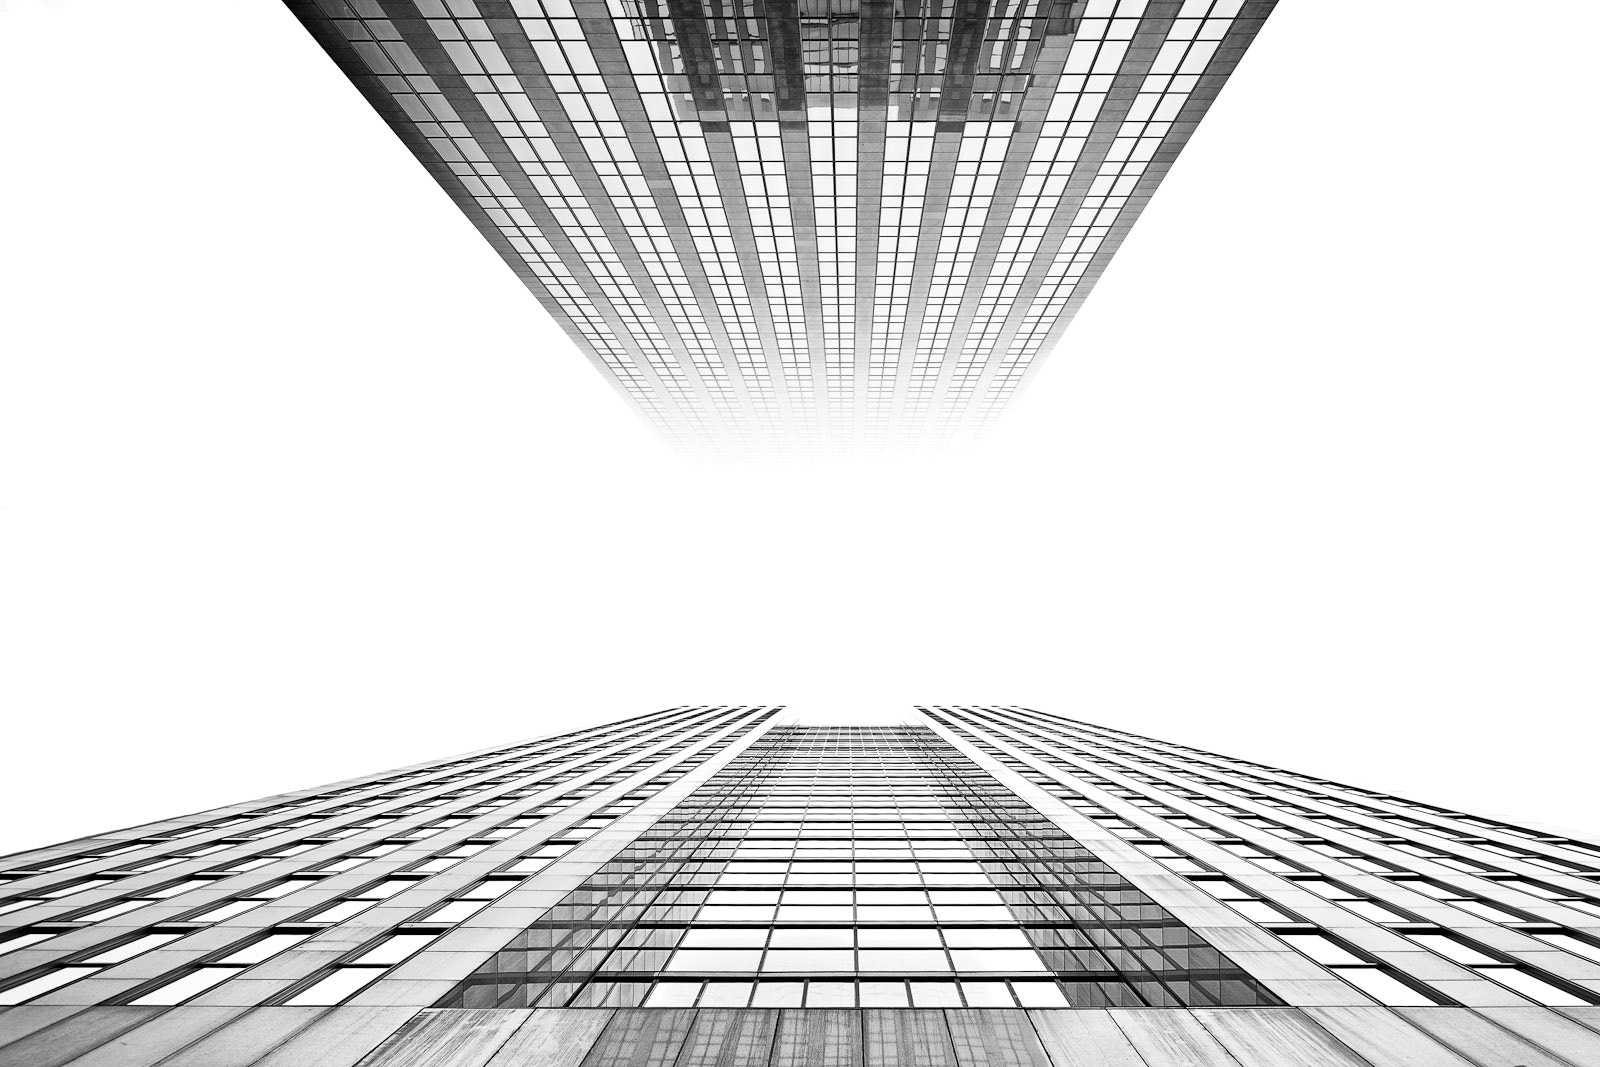 Photograph Looking up by Bastian Sander on 500px